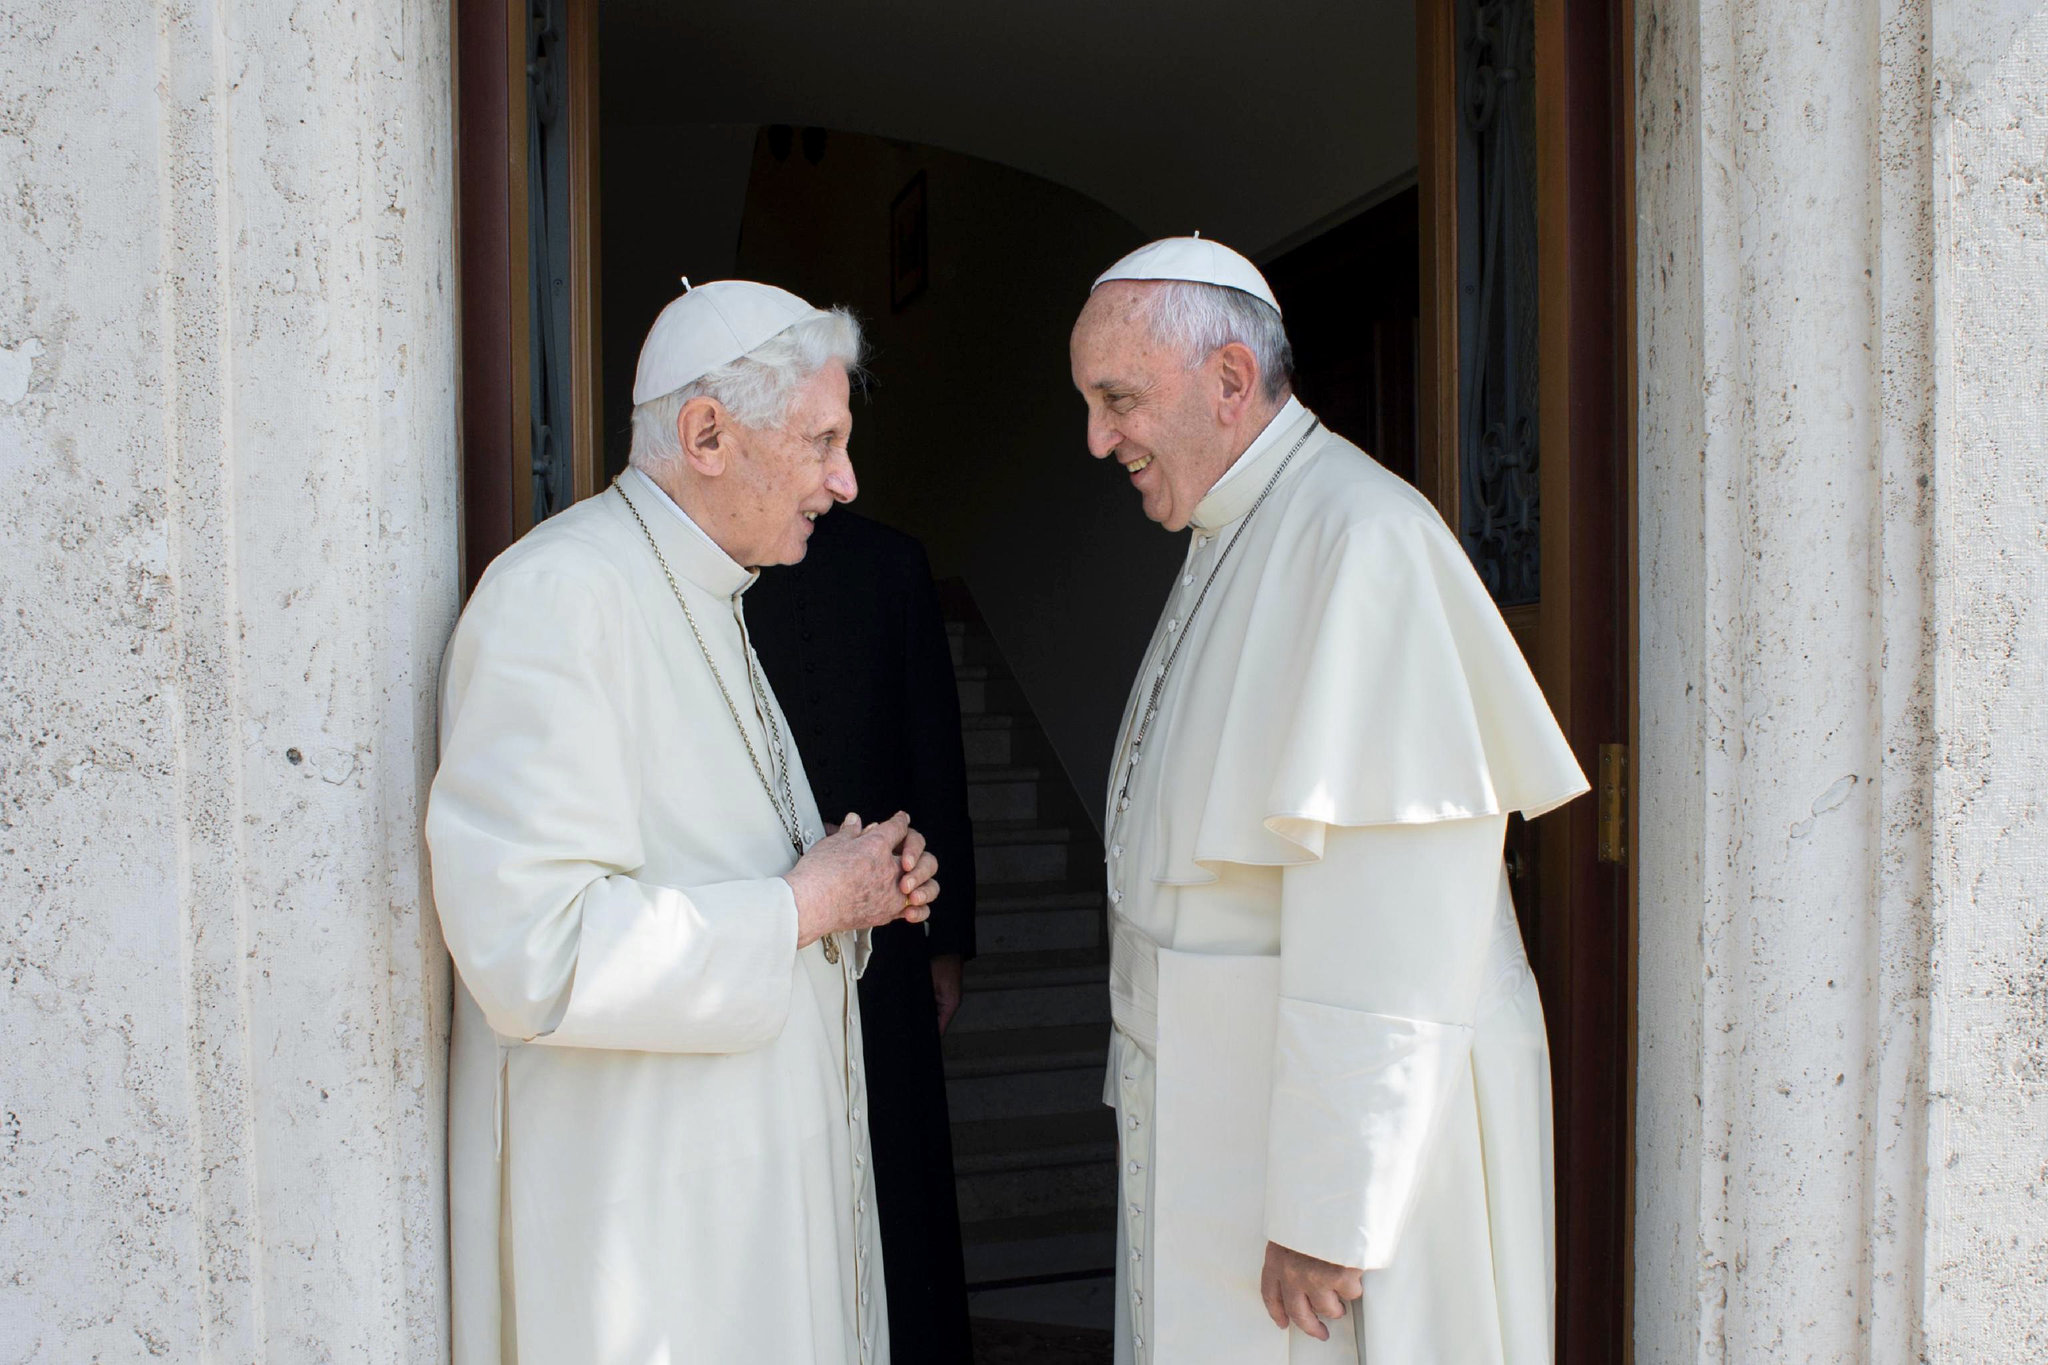 Francis Considers Celibacy Controversy With Benedict 'closed' – Report